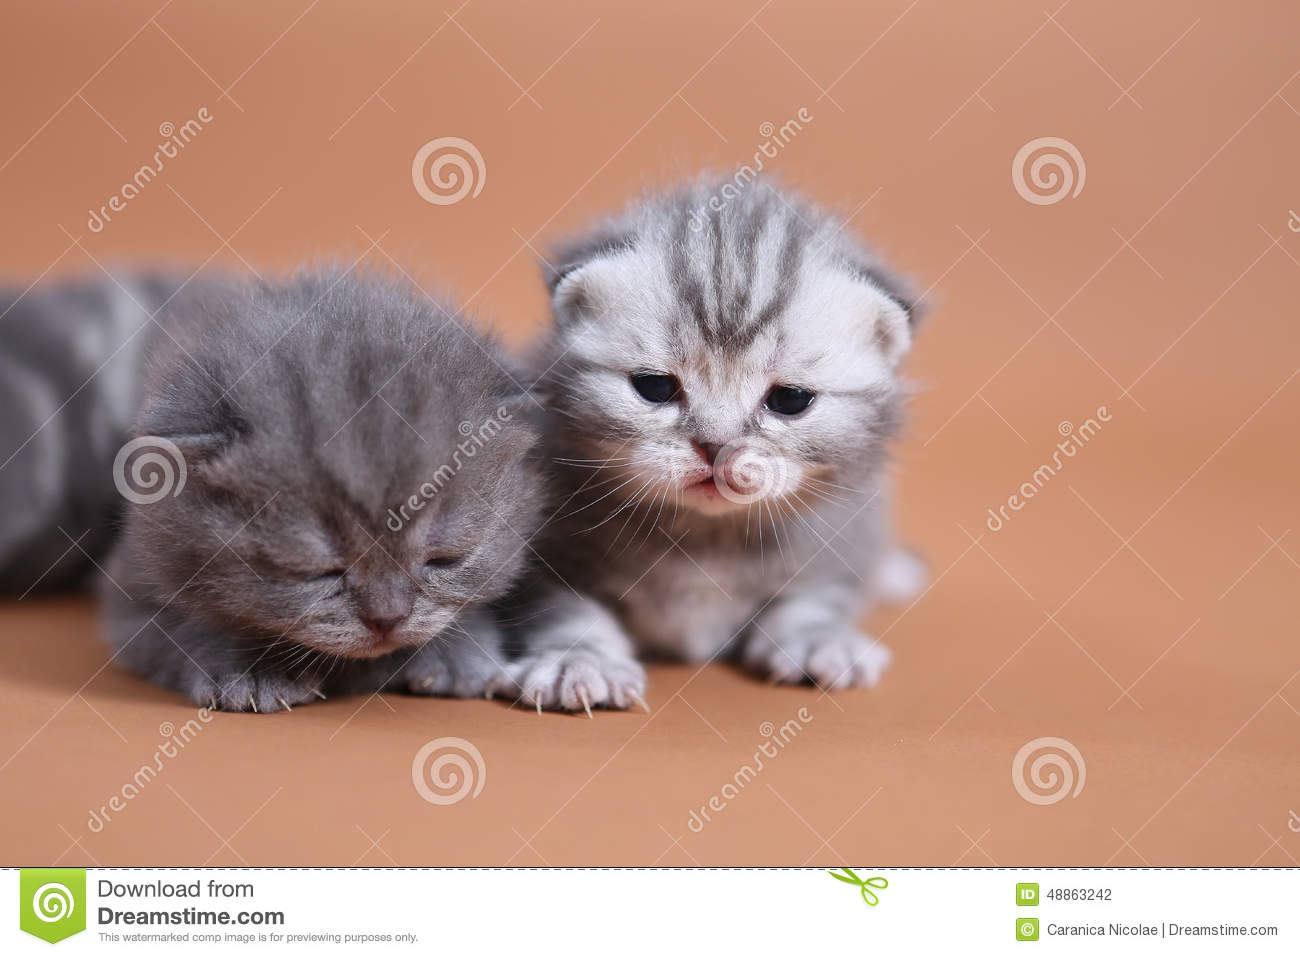 Cute Baby Cats Stock Photo Image Of Exploring Pets 48863242